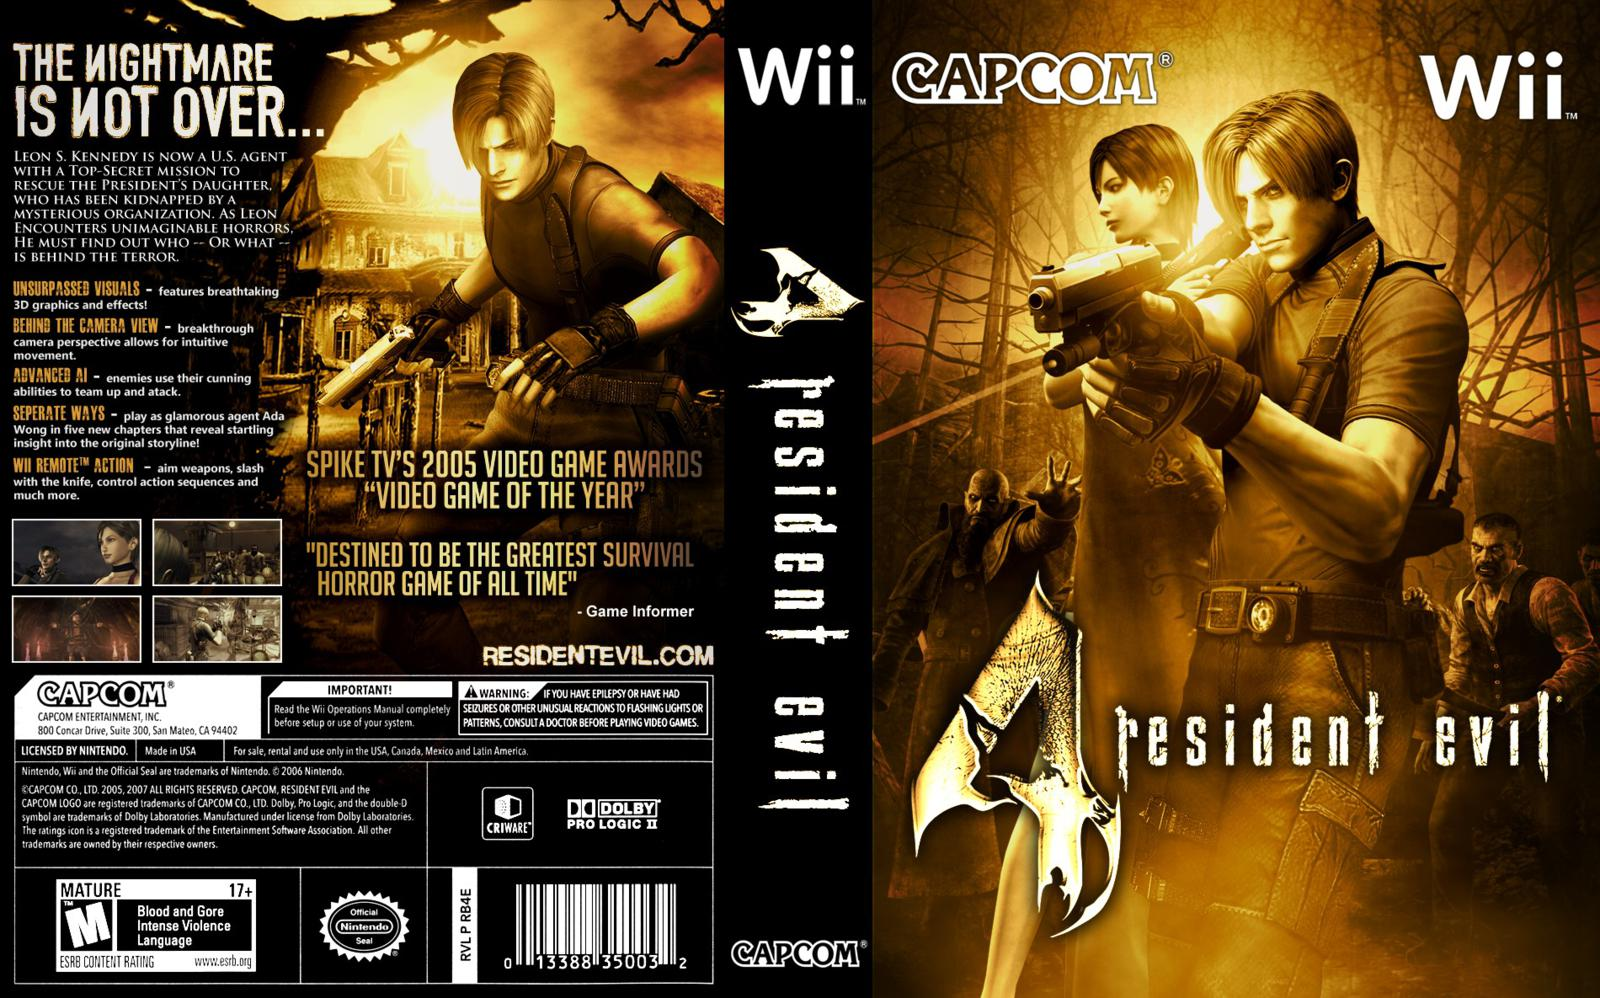 Resident evil 4: wii edition download • wii game iso torrent •.